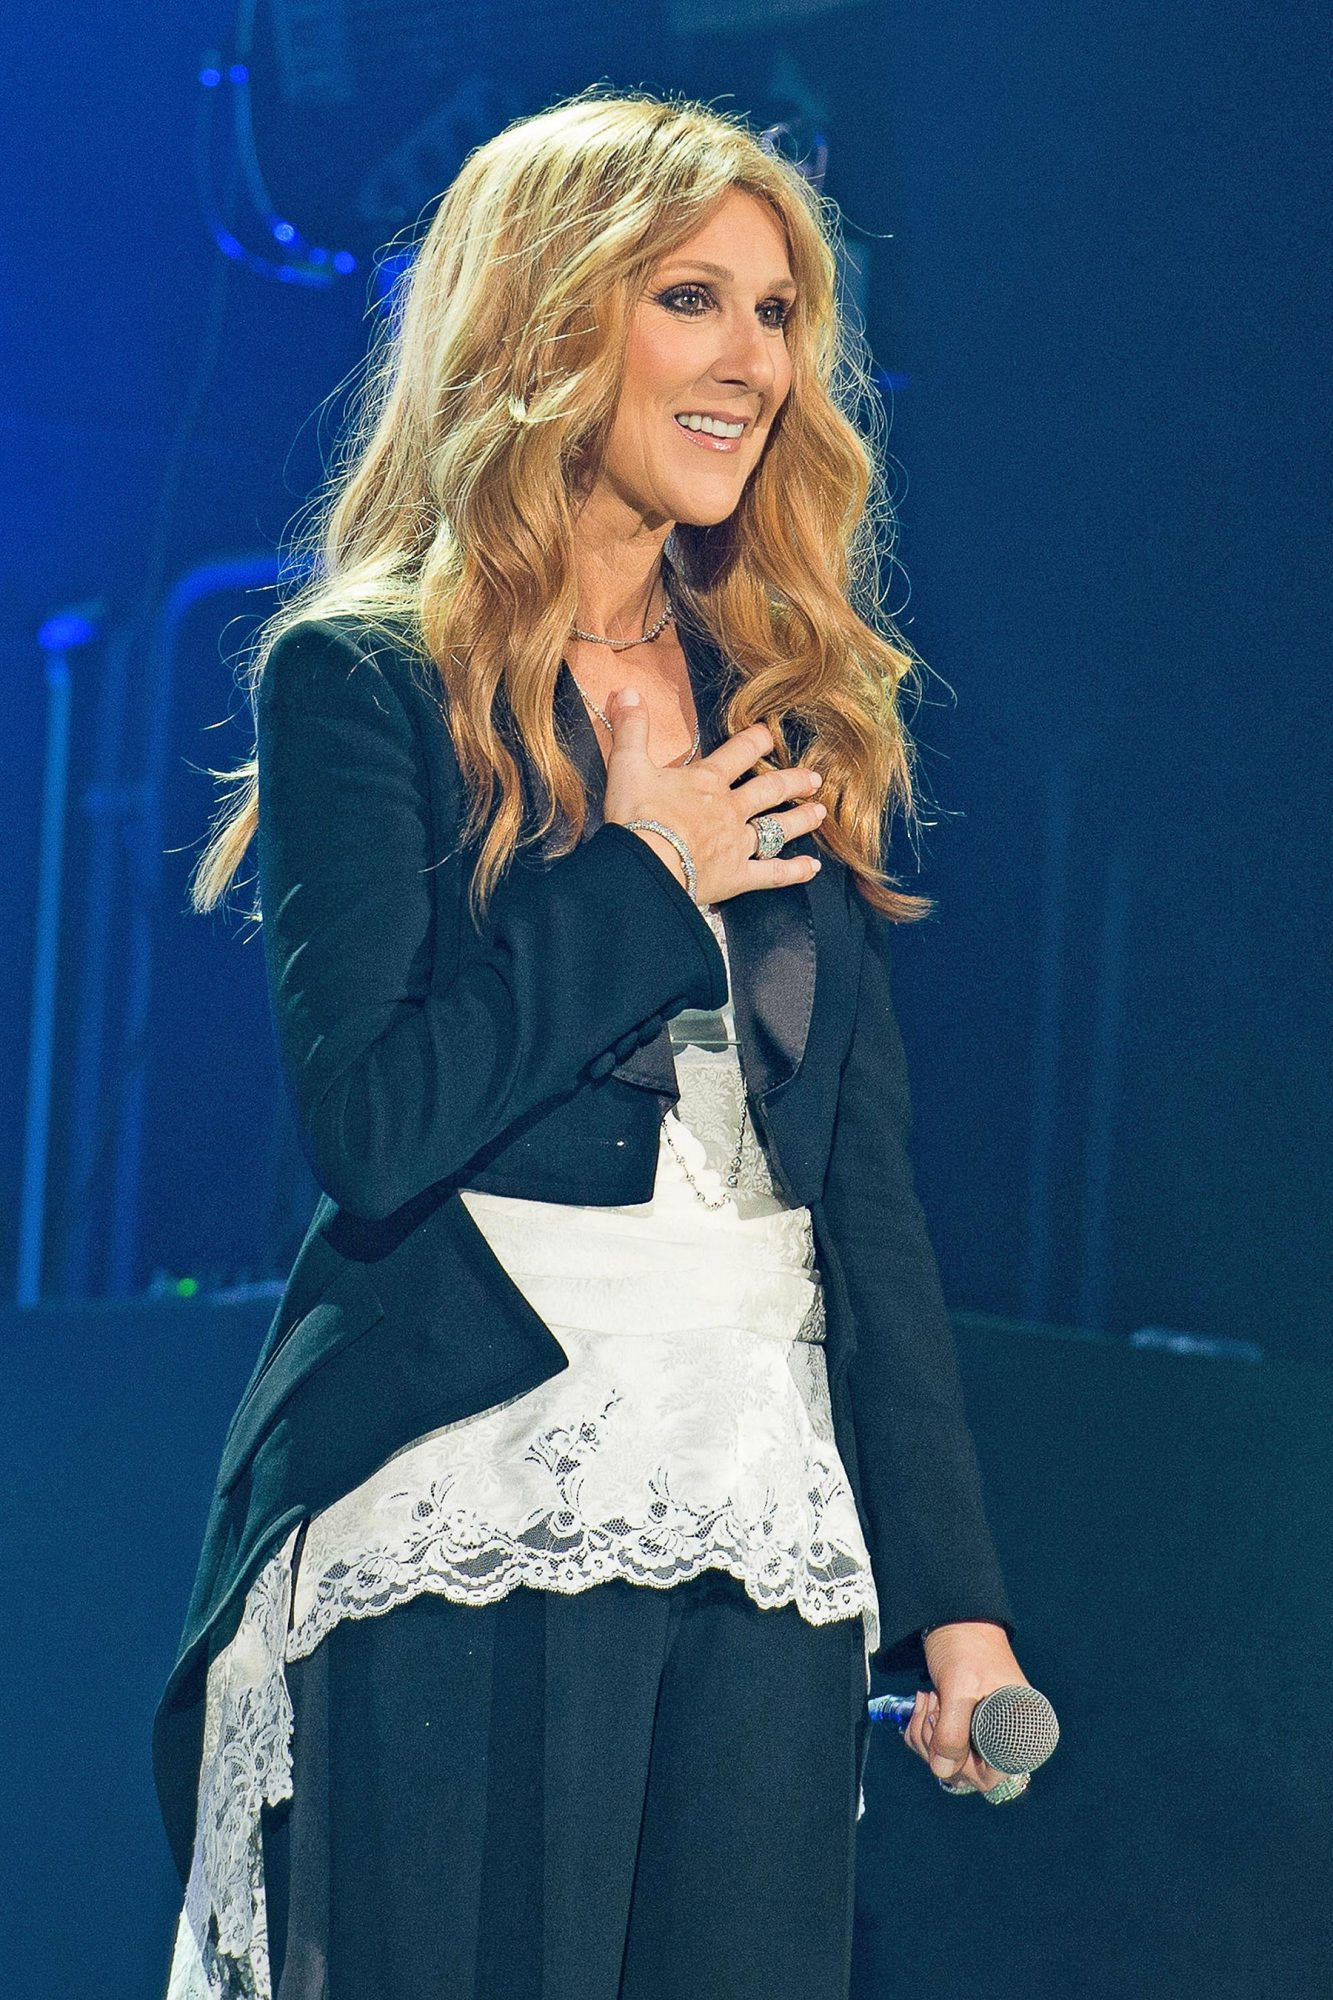 Celine Dion Celine Dion Performs At AccorHotels Arena Bercy In Paris